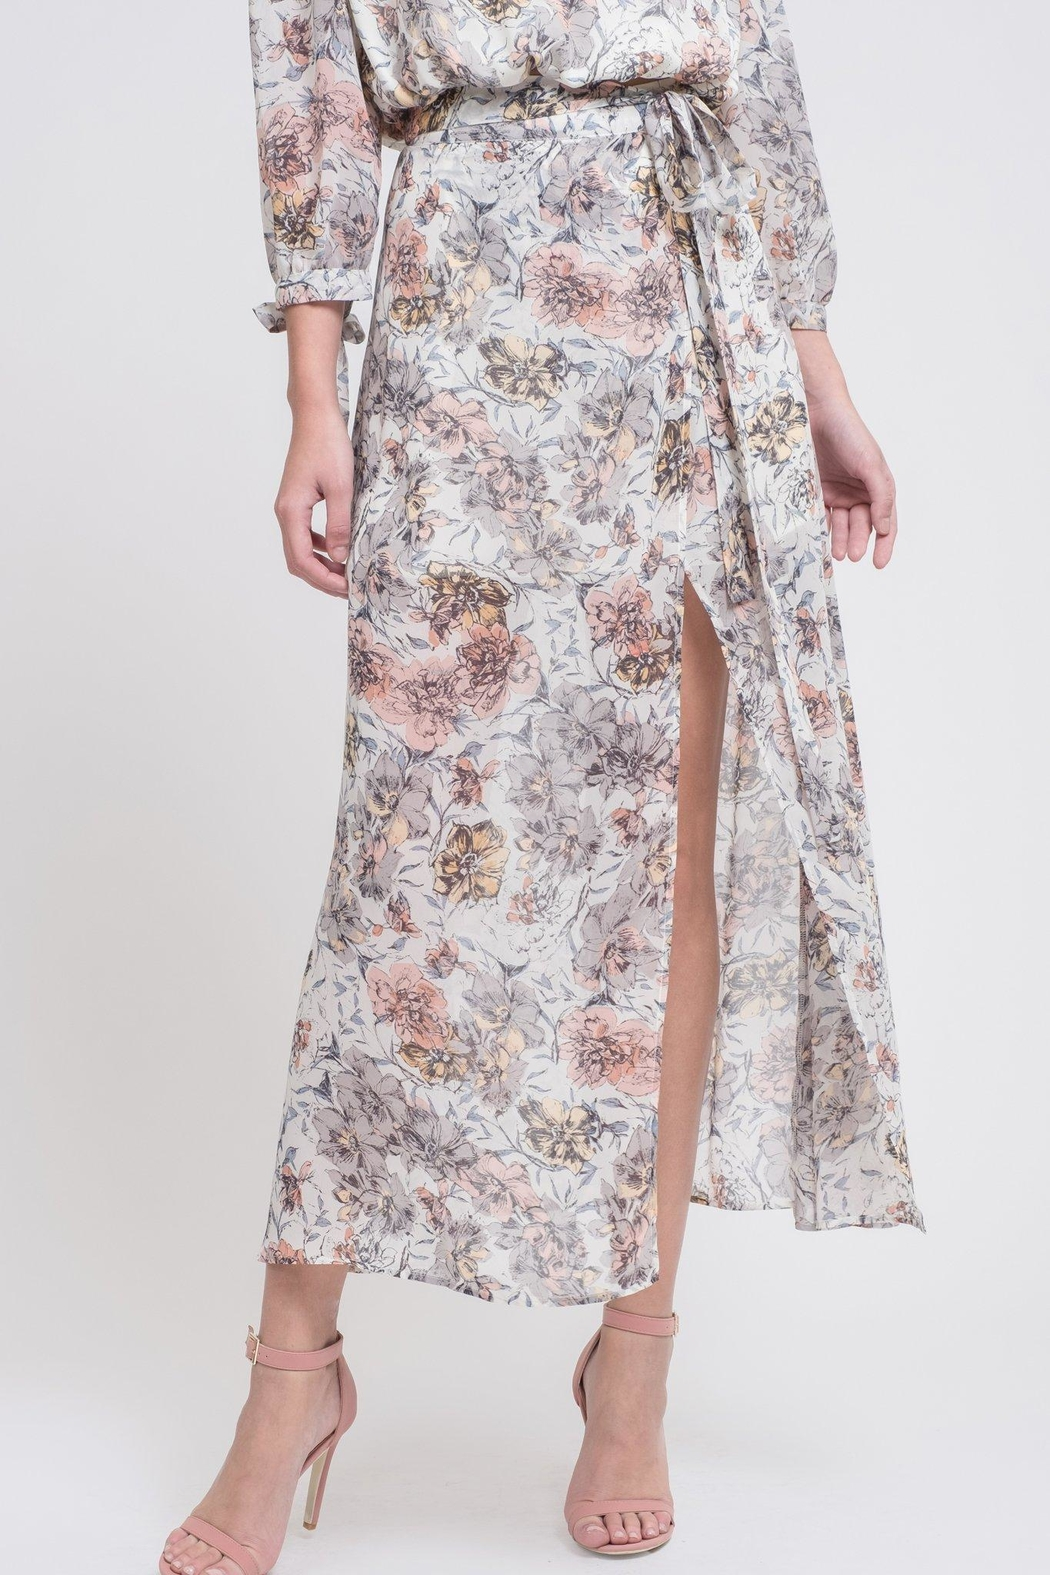 J.O.A. Floral Maxi Skirt - Front Cropped Image